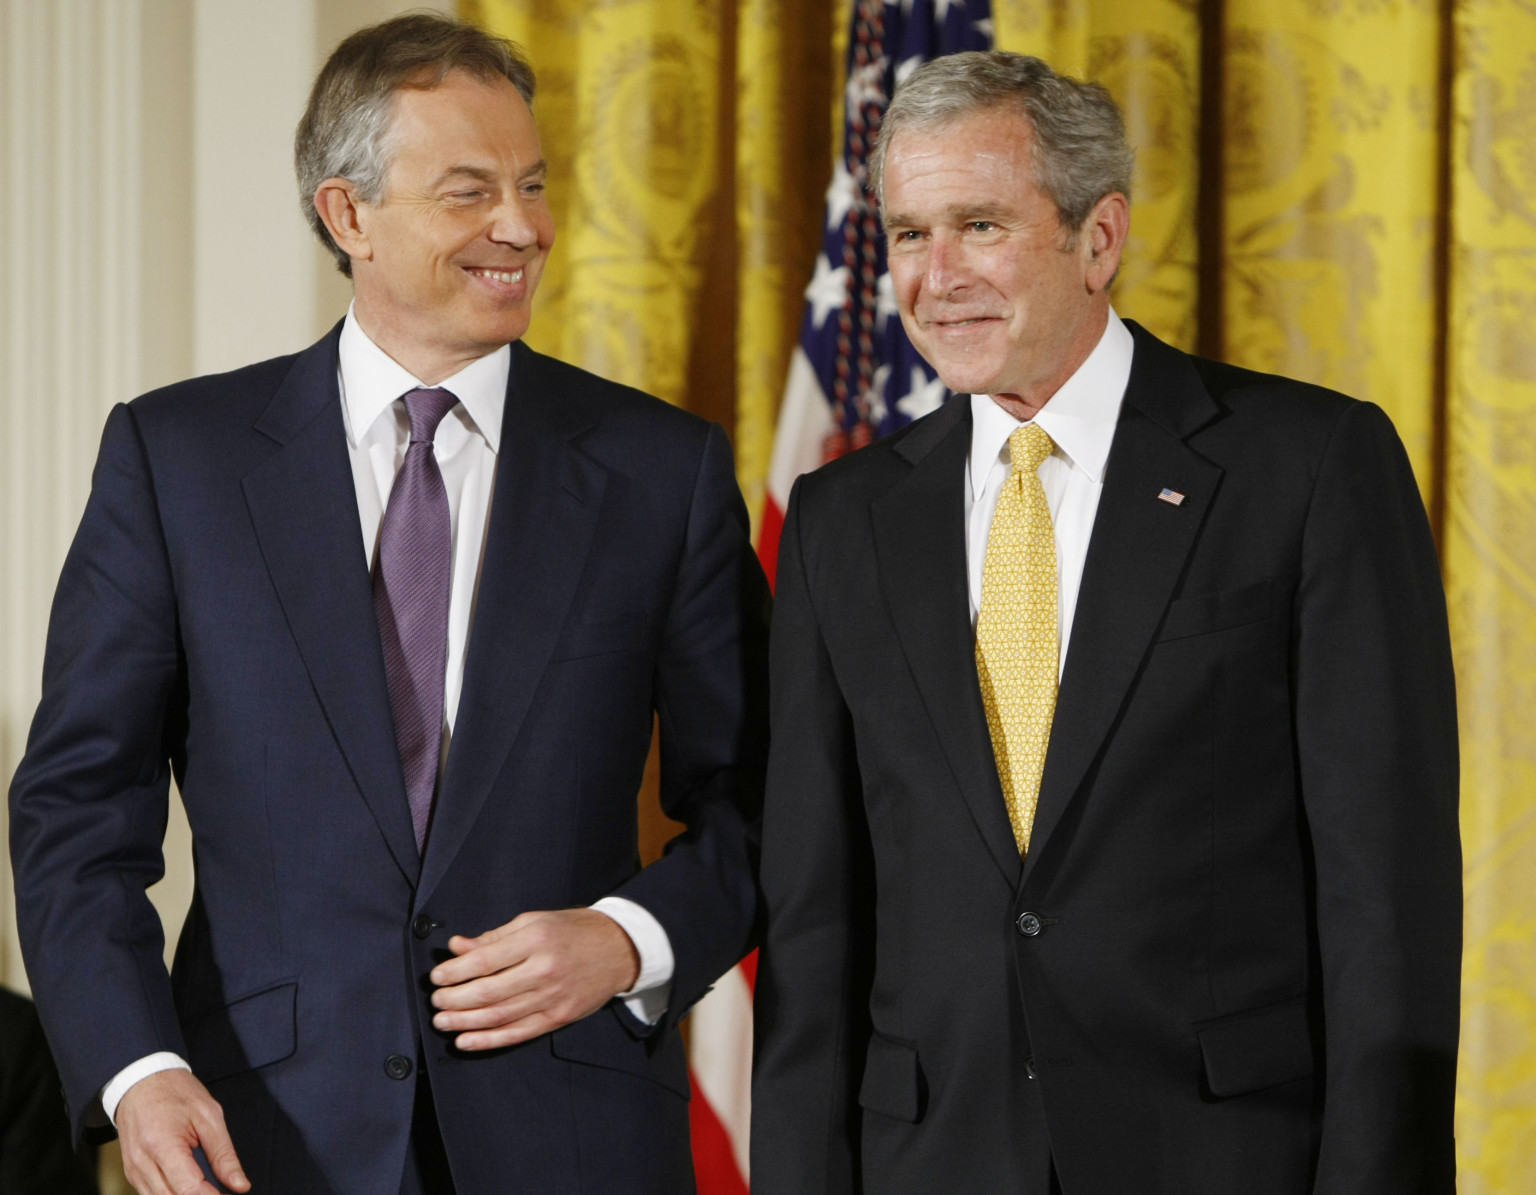 Picture 3 Source: Associated Press/ Gerald Herbert.  Caption: Amused by the absence of accountability: Ex-President George W. Bush and former British Prime Minister Tony Blair in the White House, Tuesday, Jan. 13, 2009.